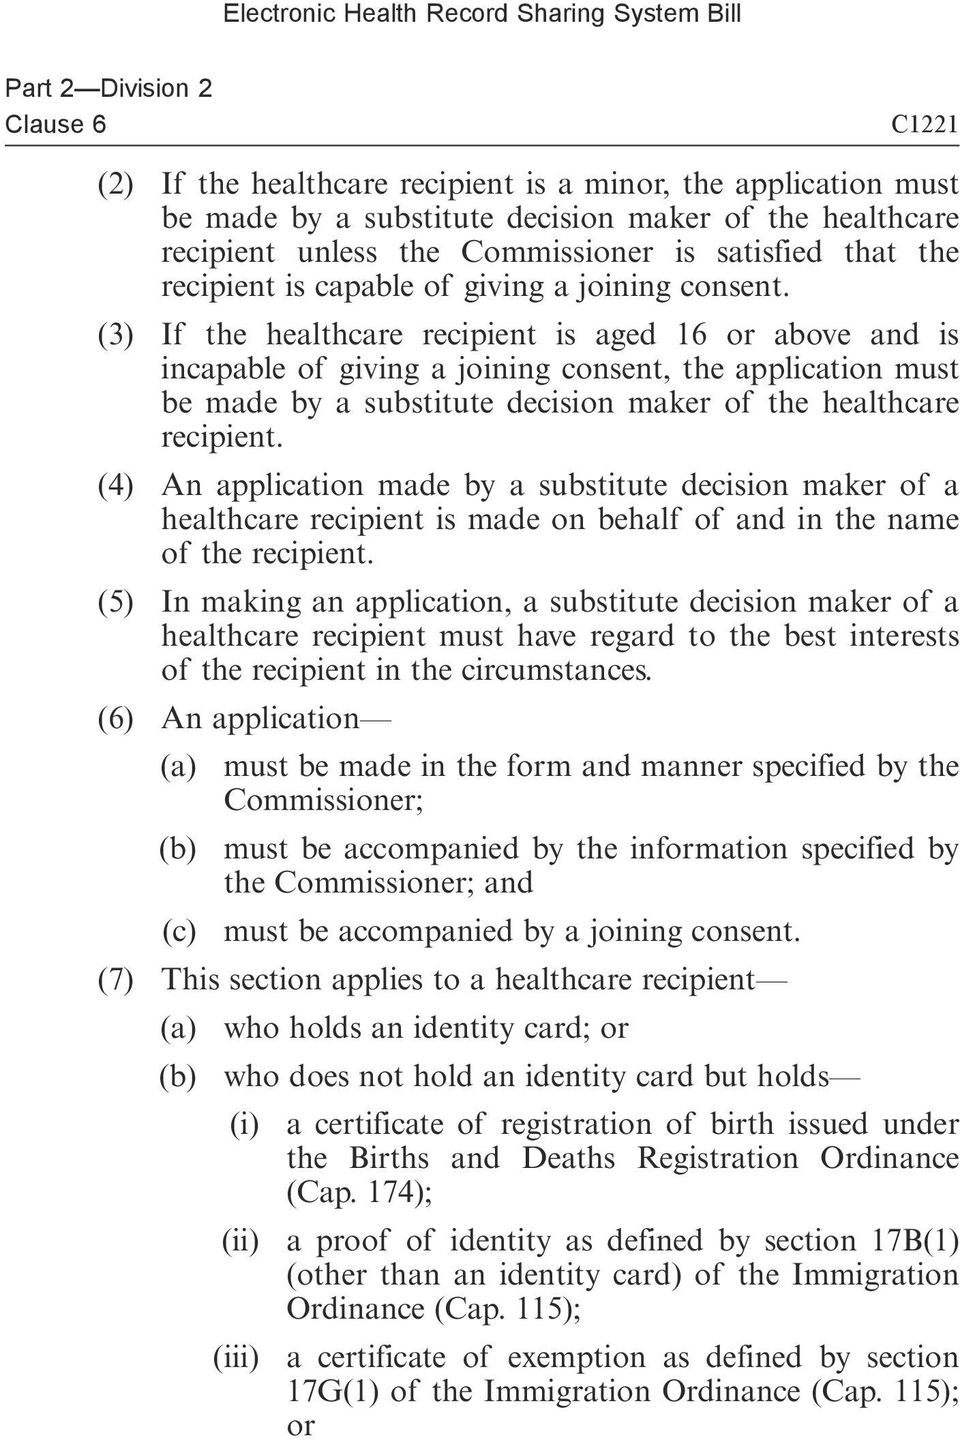 (3) If the healthcare recipient is aged 16 or above and is incapable of giving a joining consent, the application must be made by a substitute decision maker of the healthcare recipient.